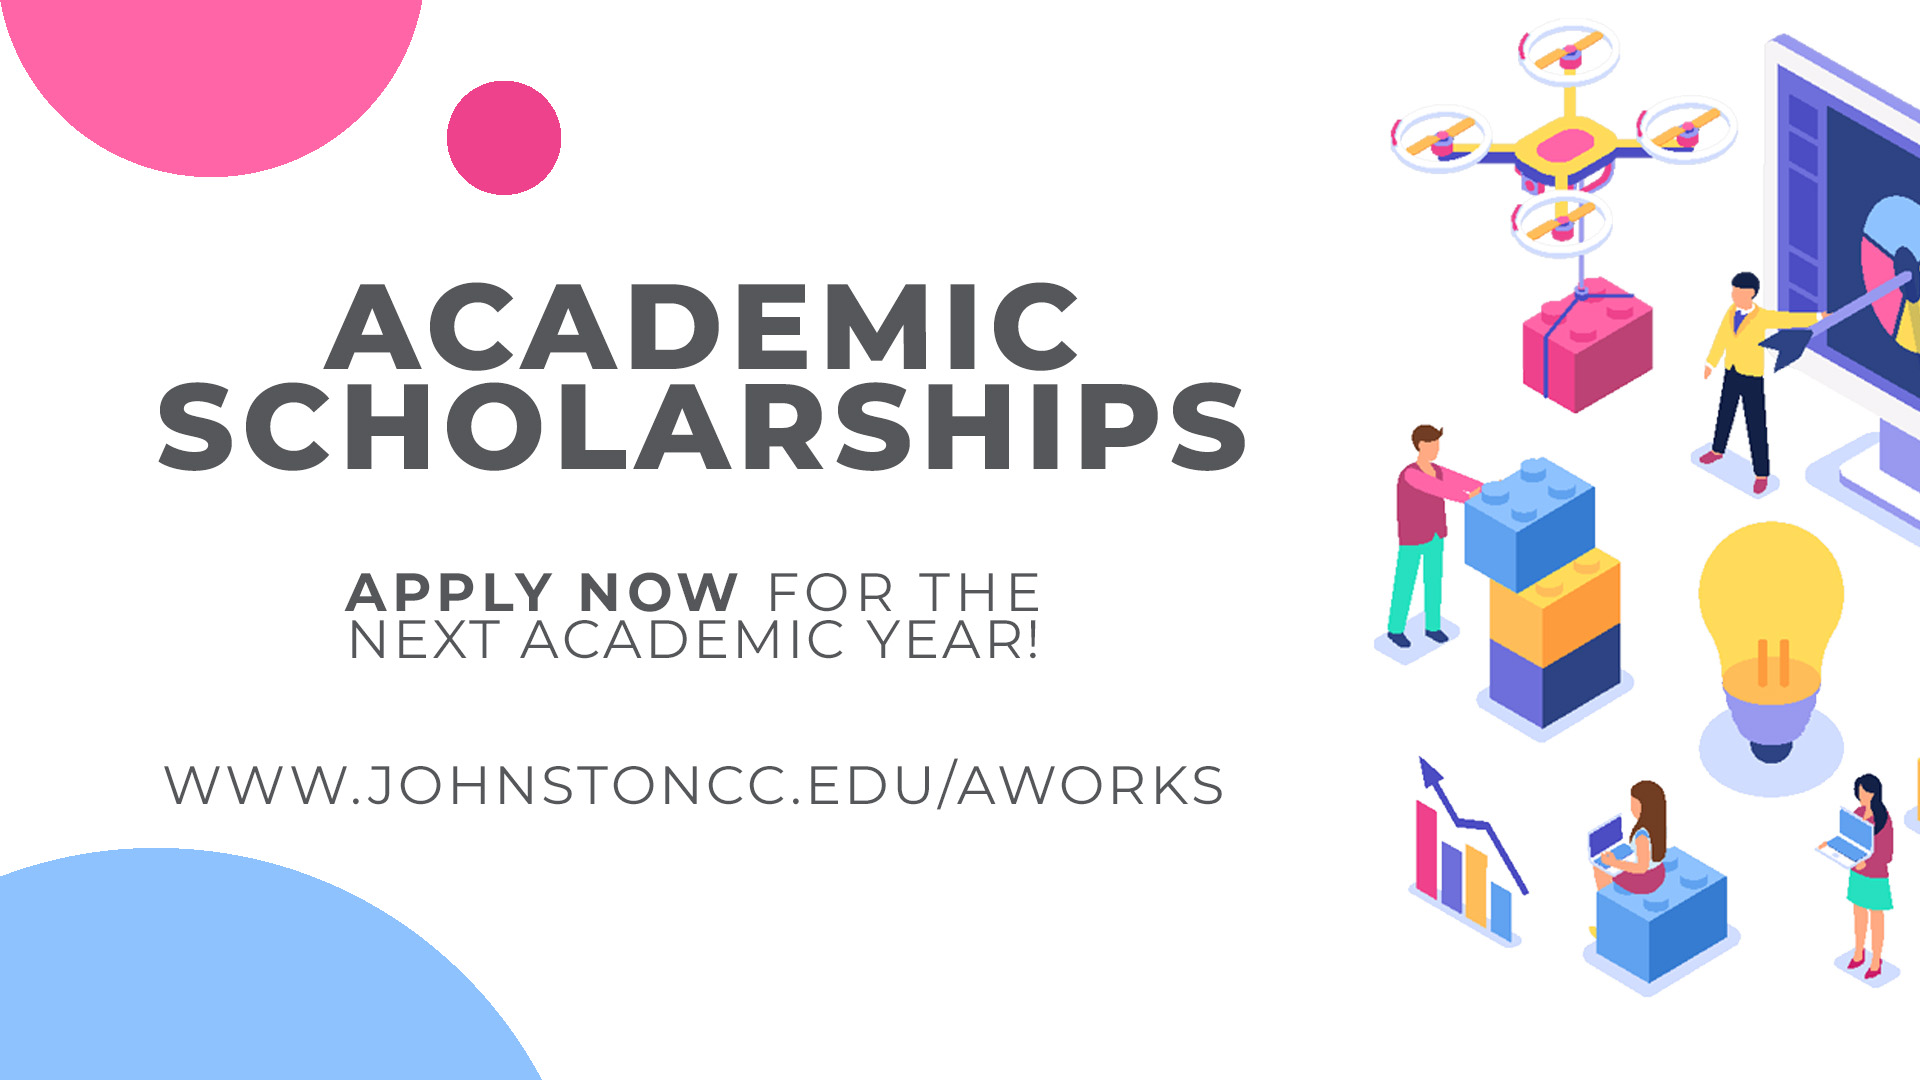 Academic Scholarships. Apply now for the Next Academic Year! www.johnstoncc.edu/aworks